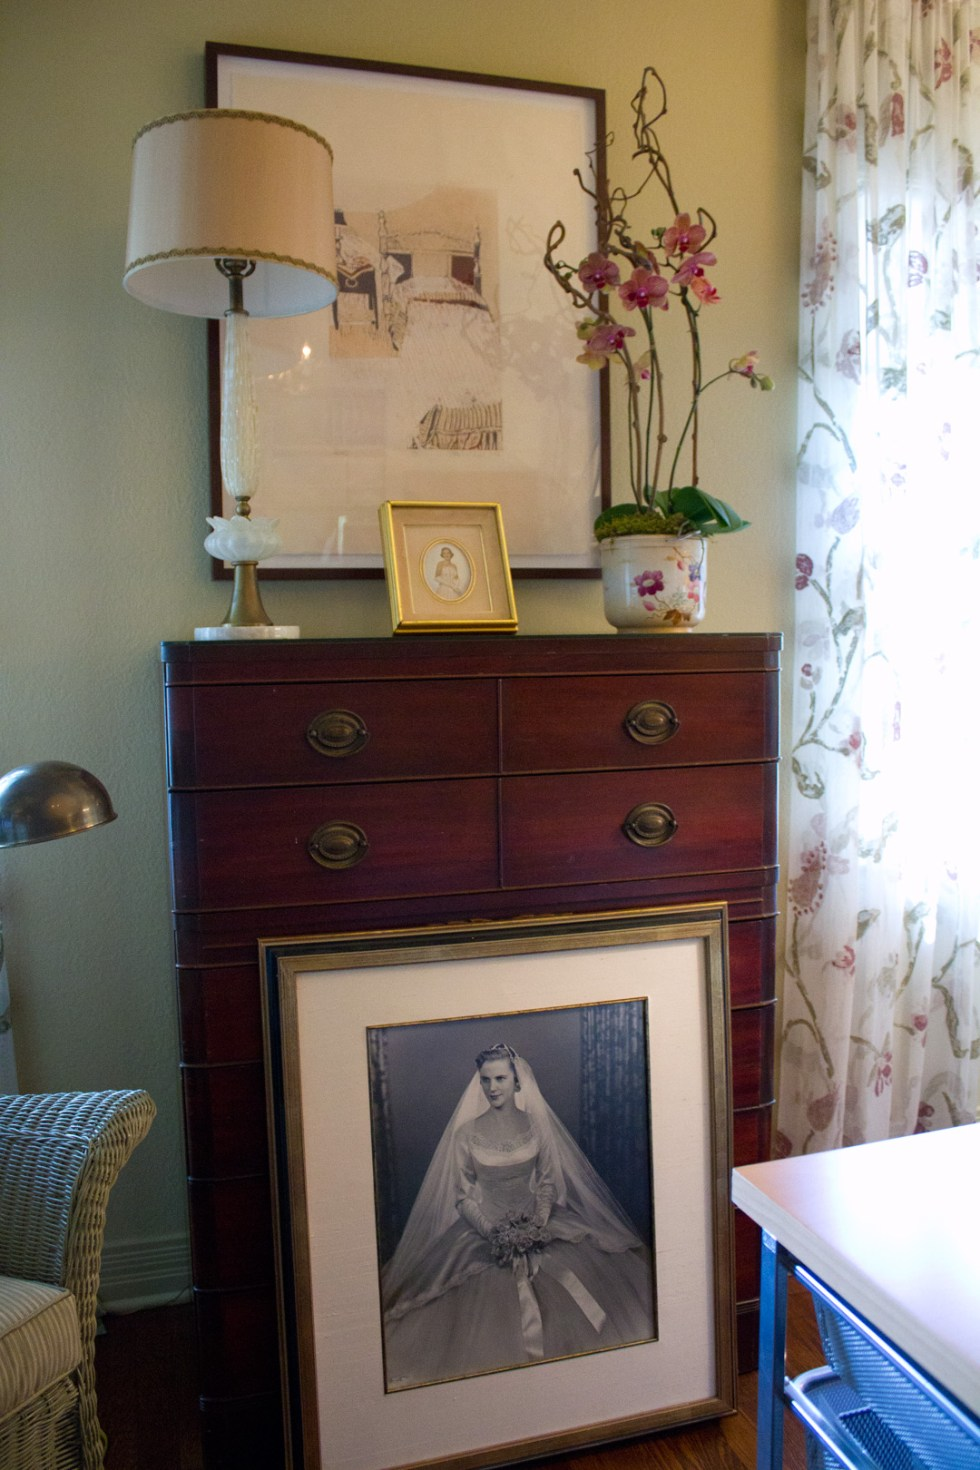 (above) Here's detail view of an old family bureau with my mother's wedding photo propped up in front. Hung above this old piece of brown furniture is a reductive woodcut I did about twenty years ago.